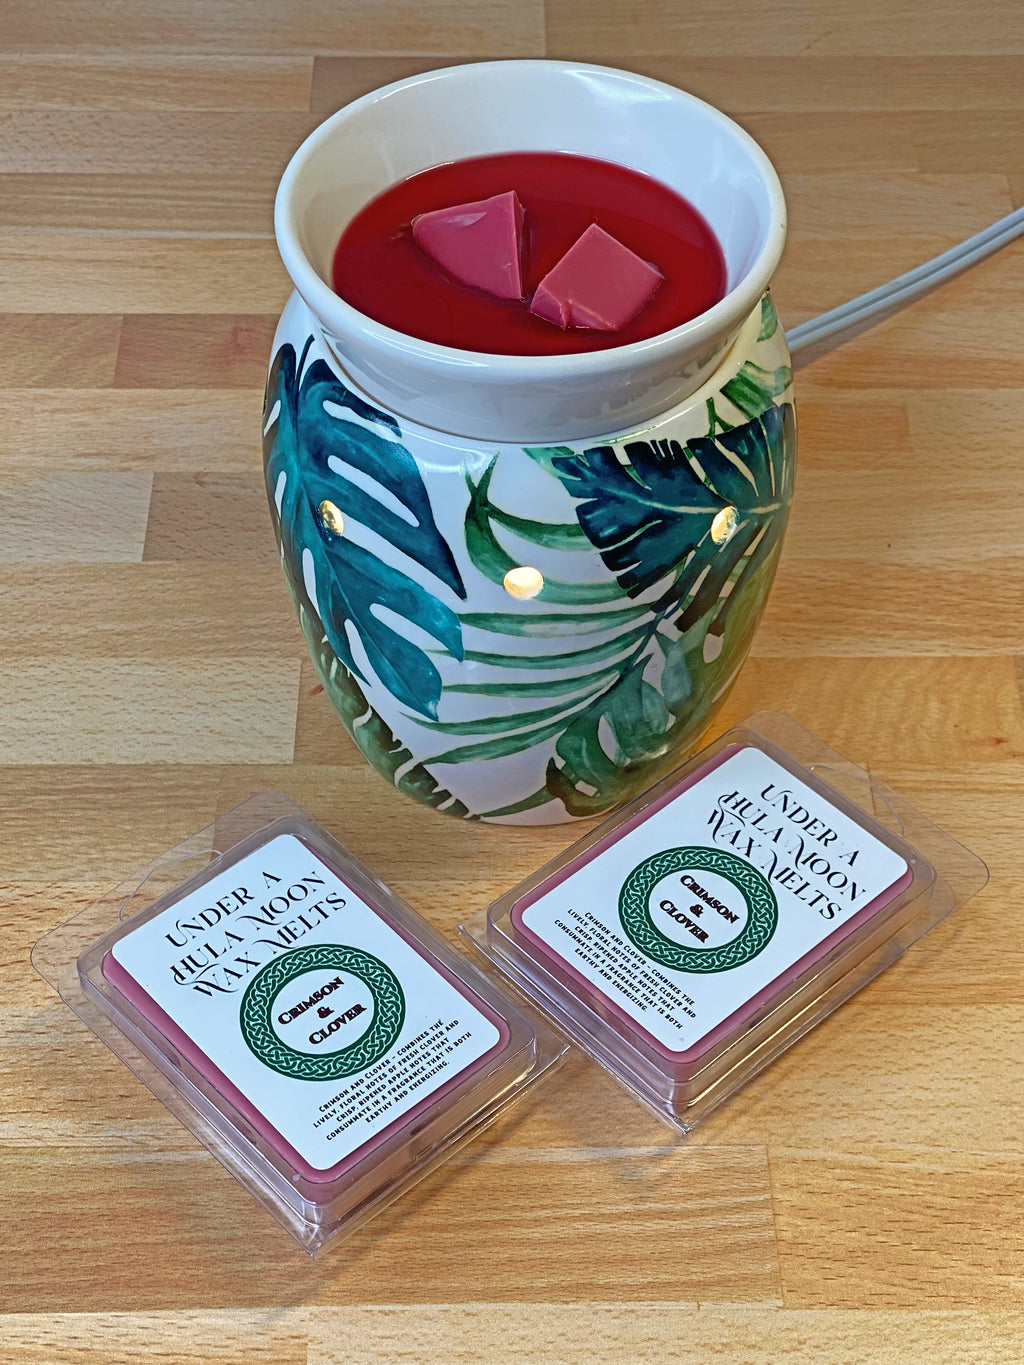 Crimson and Clover Wax Melts